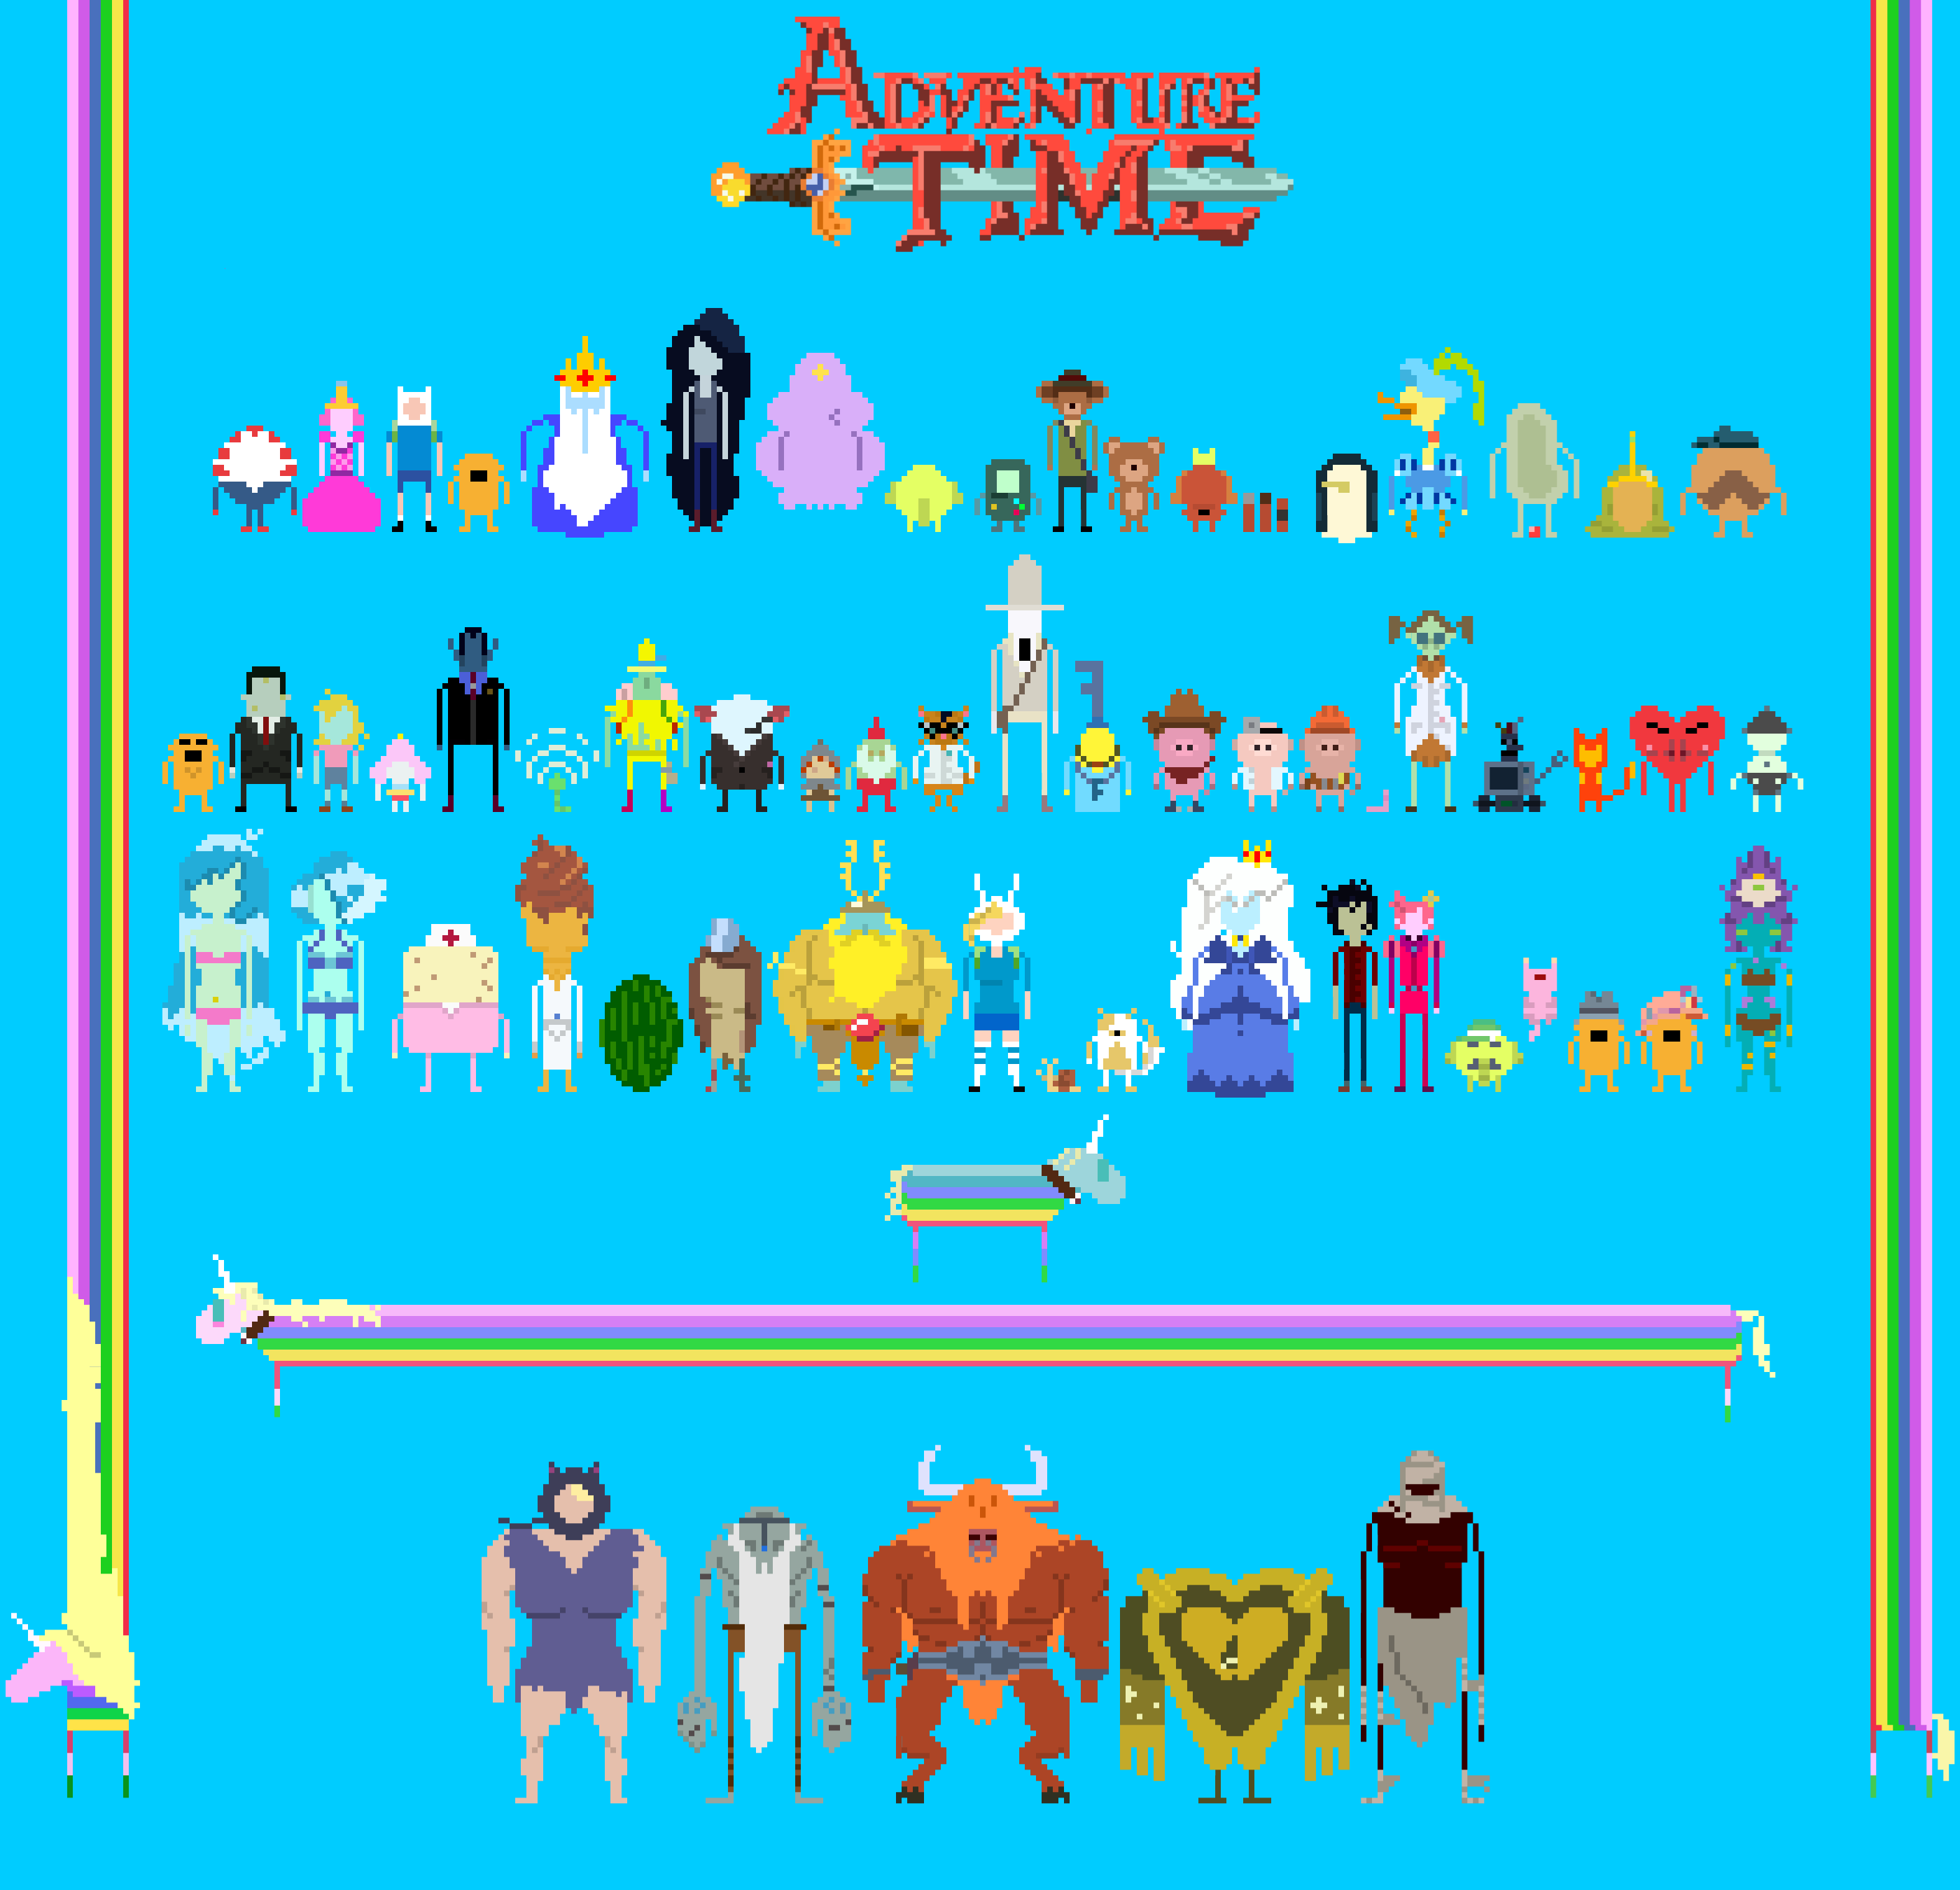 Adventure Time 8bit by supajackle